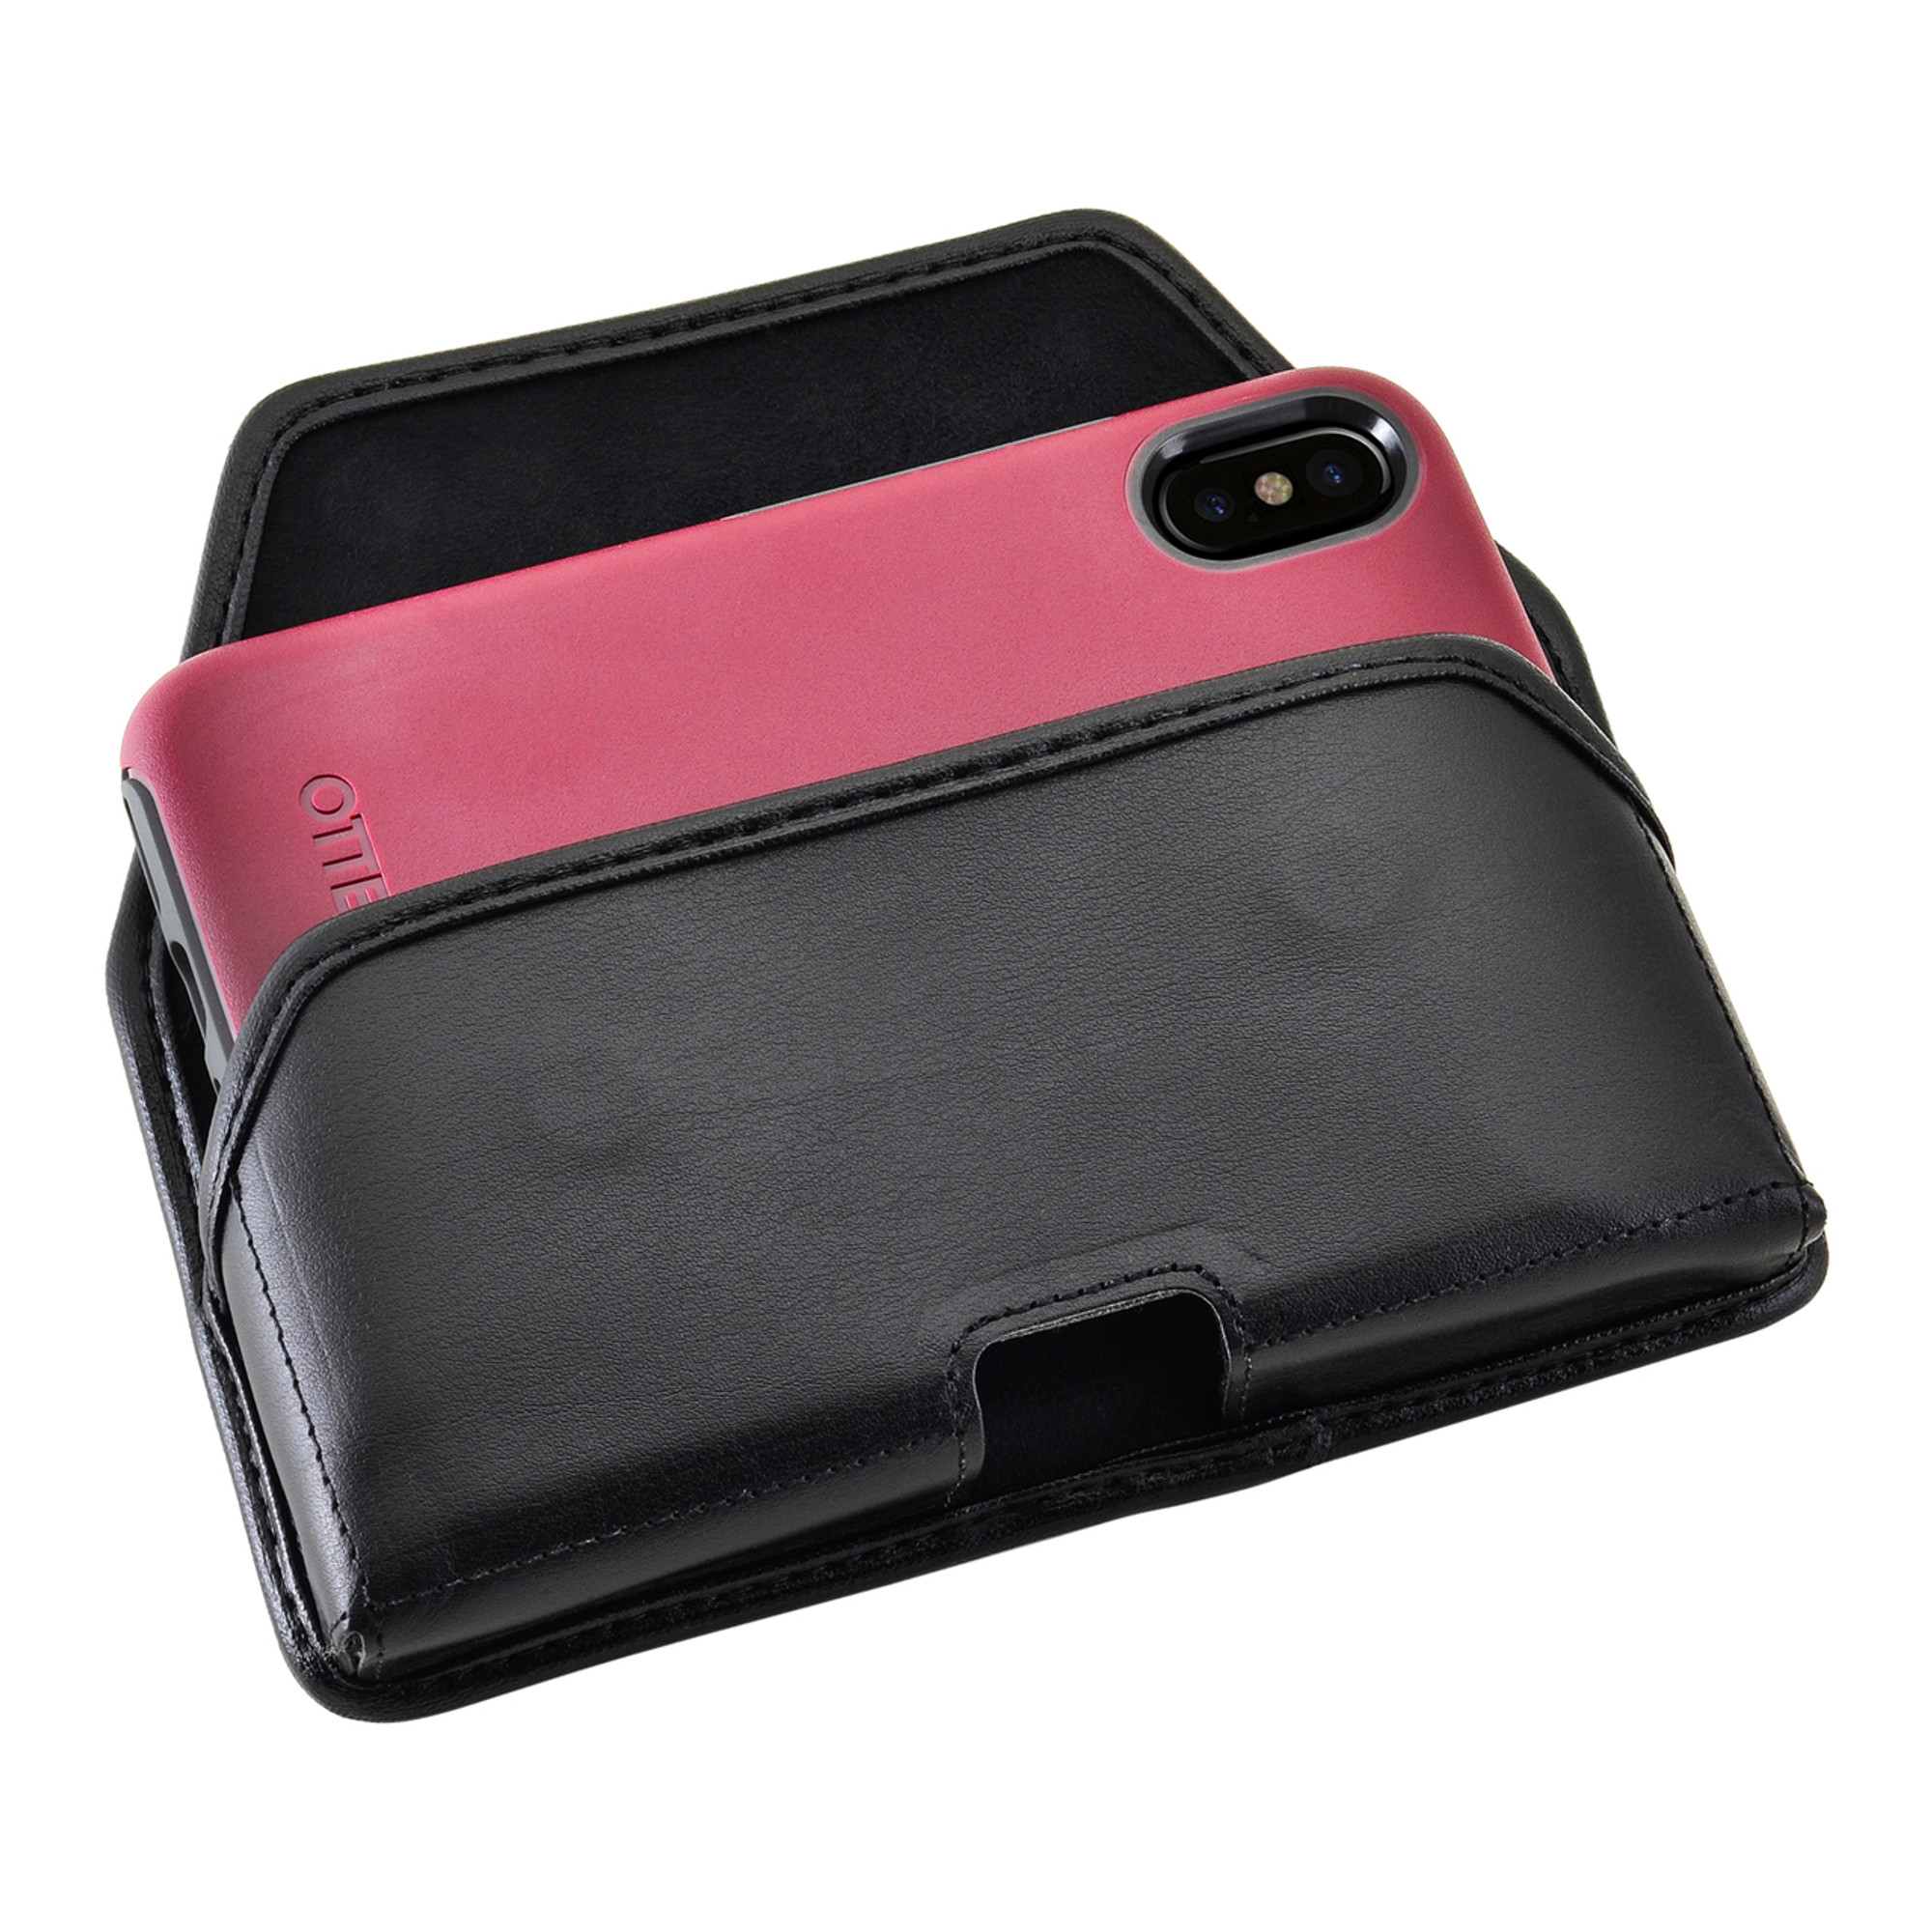 Iphone X Holster Fits Commuter Symmetry Case Leather Clip Otterbox For Black Belt Horizontal